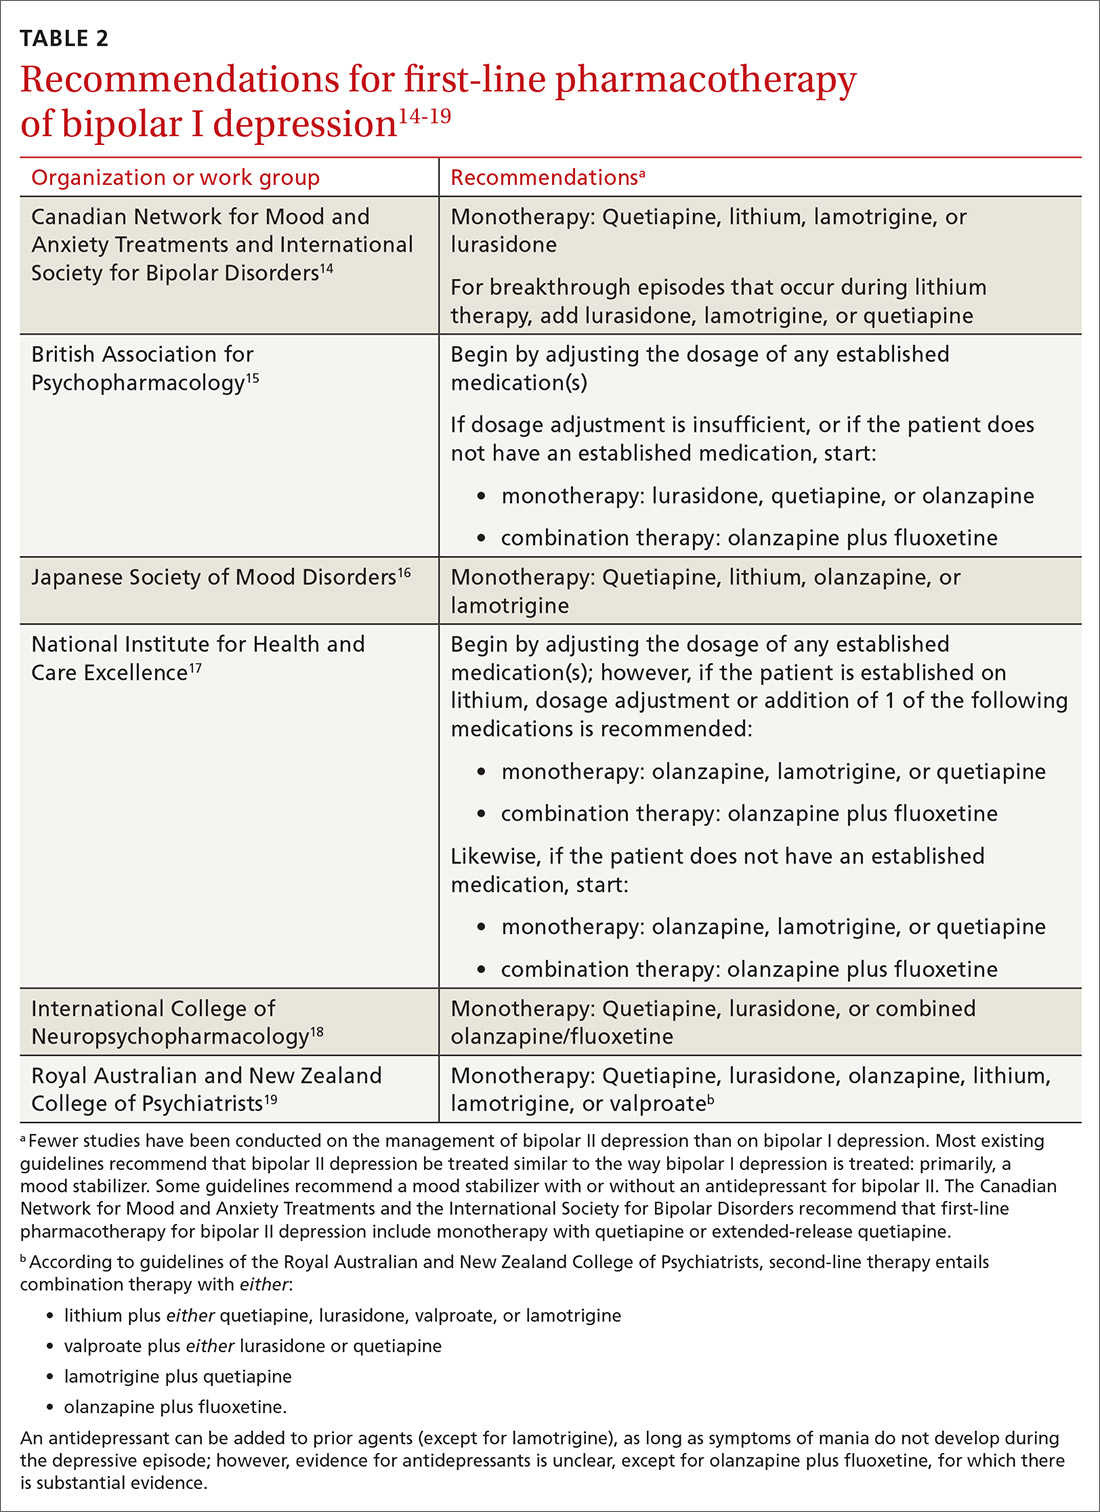 Recommendations for first-line pharmacotherapy of bipolar I depression